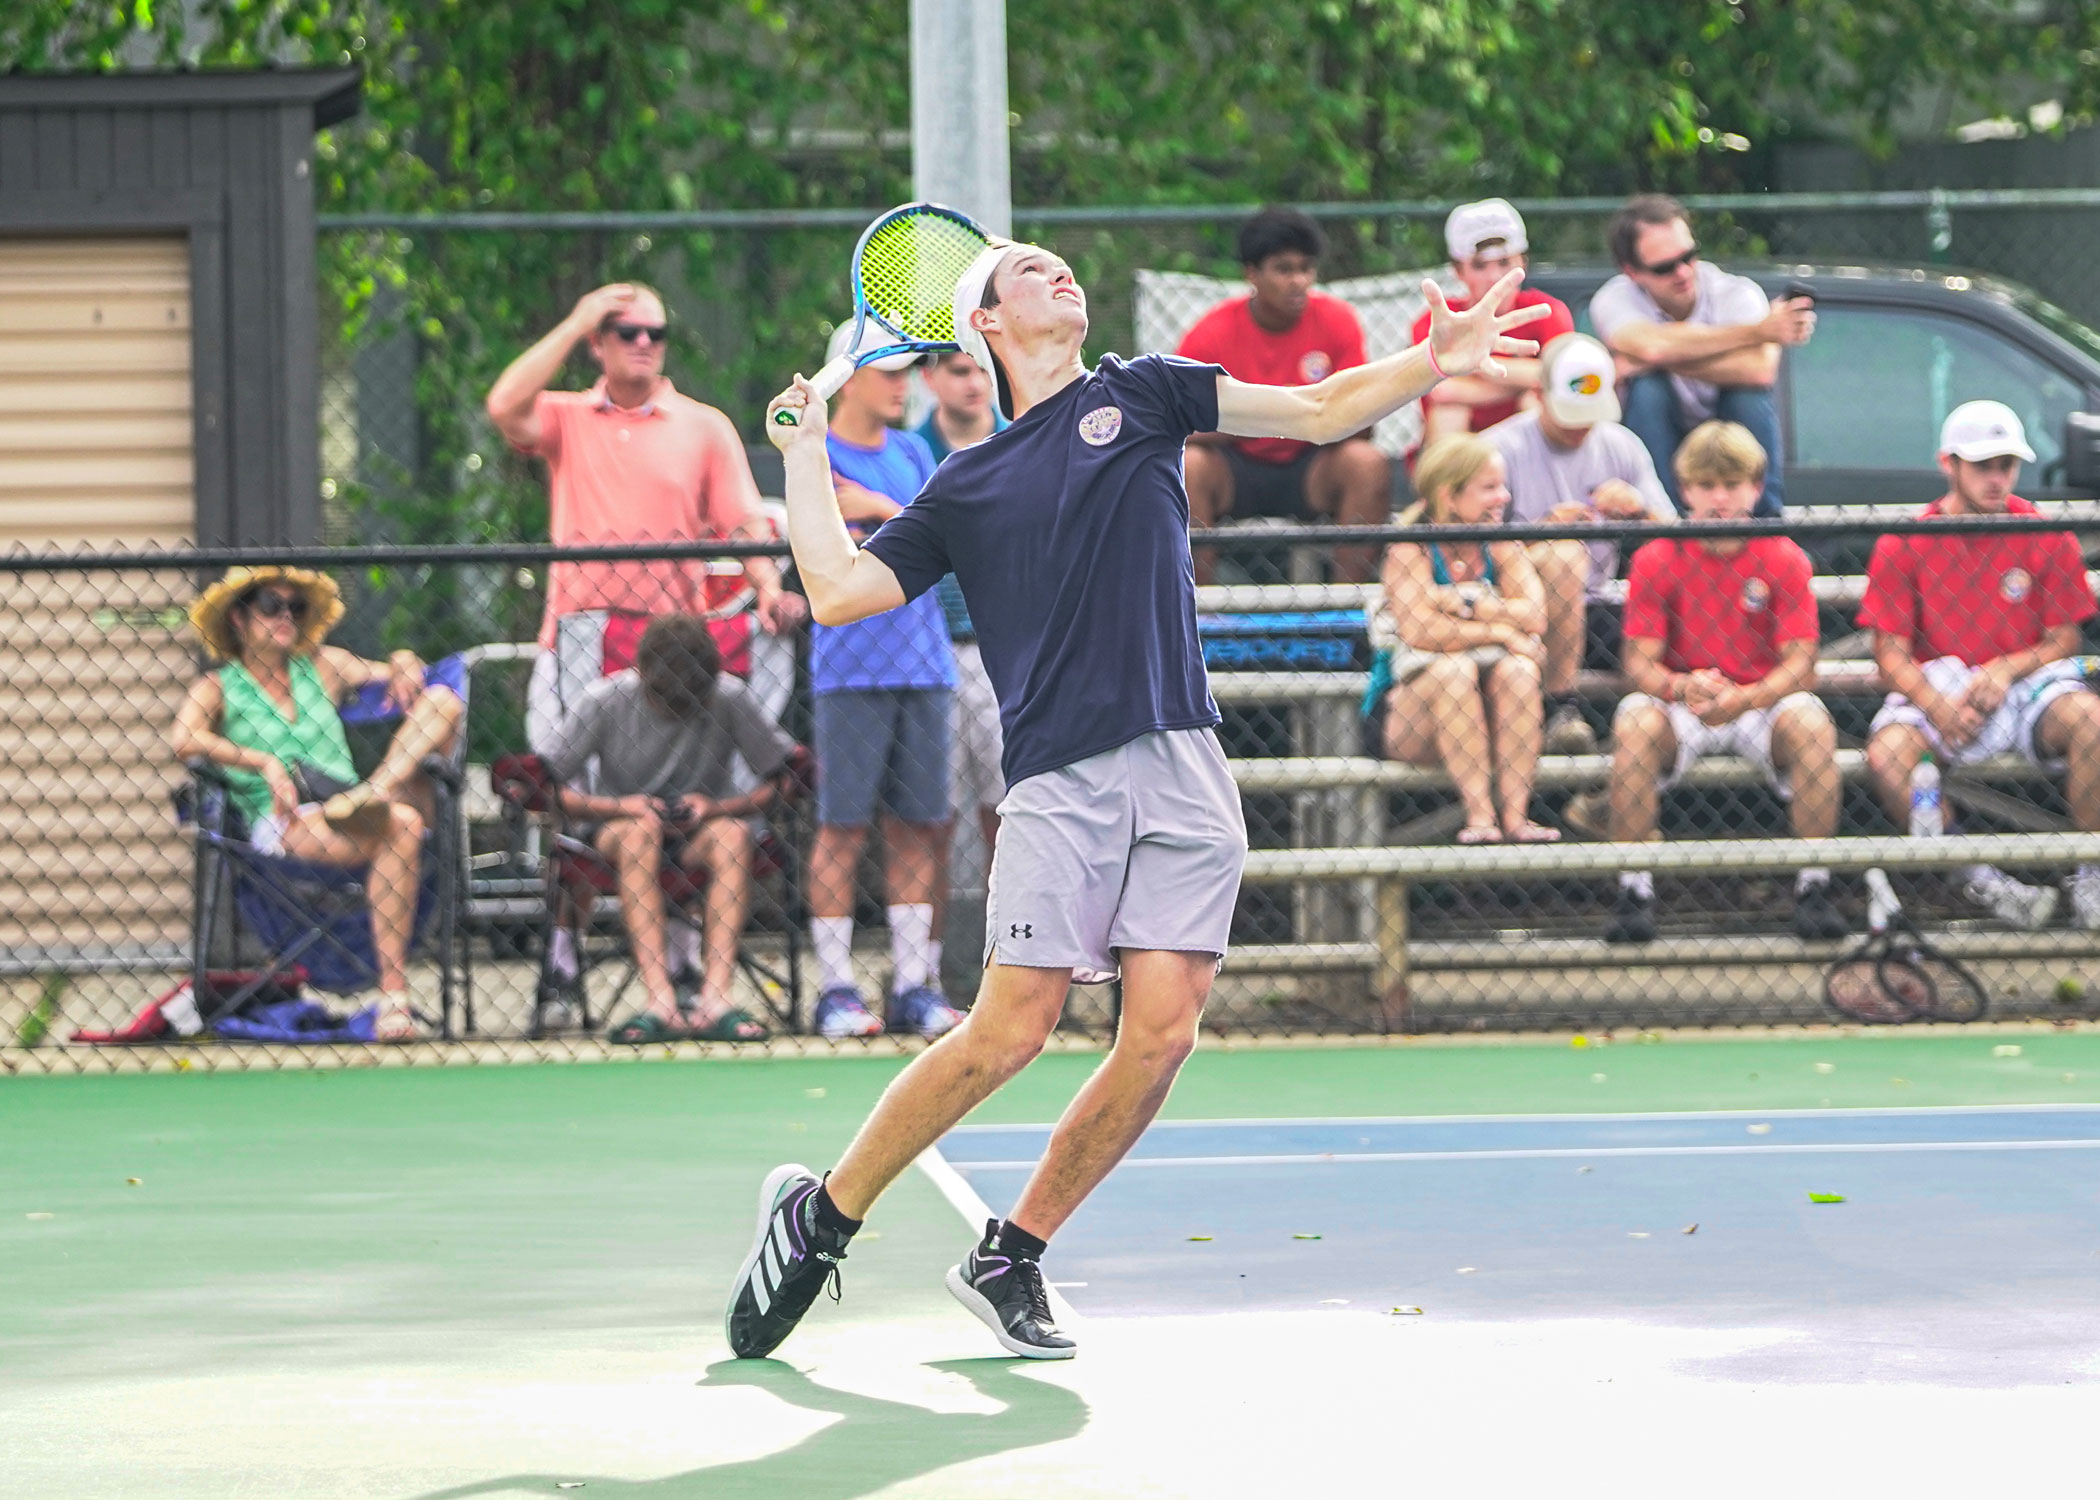 North Boys' and Girls' All-Star Teams  Sweep AHSAA All-Star Tennis Competition